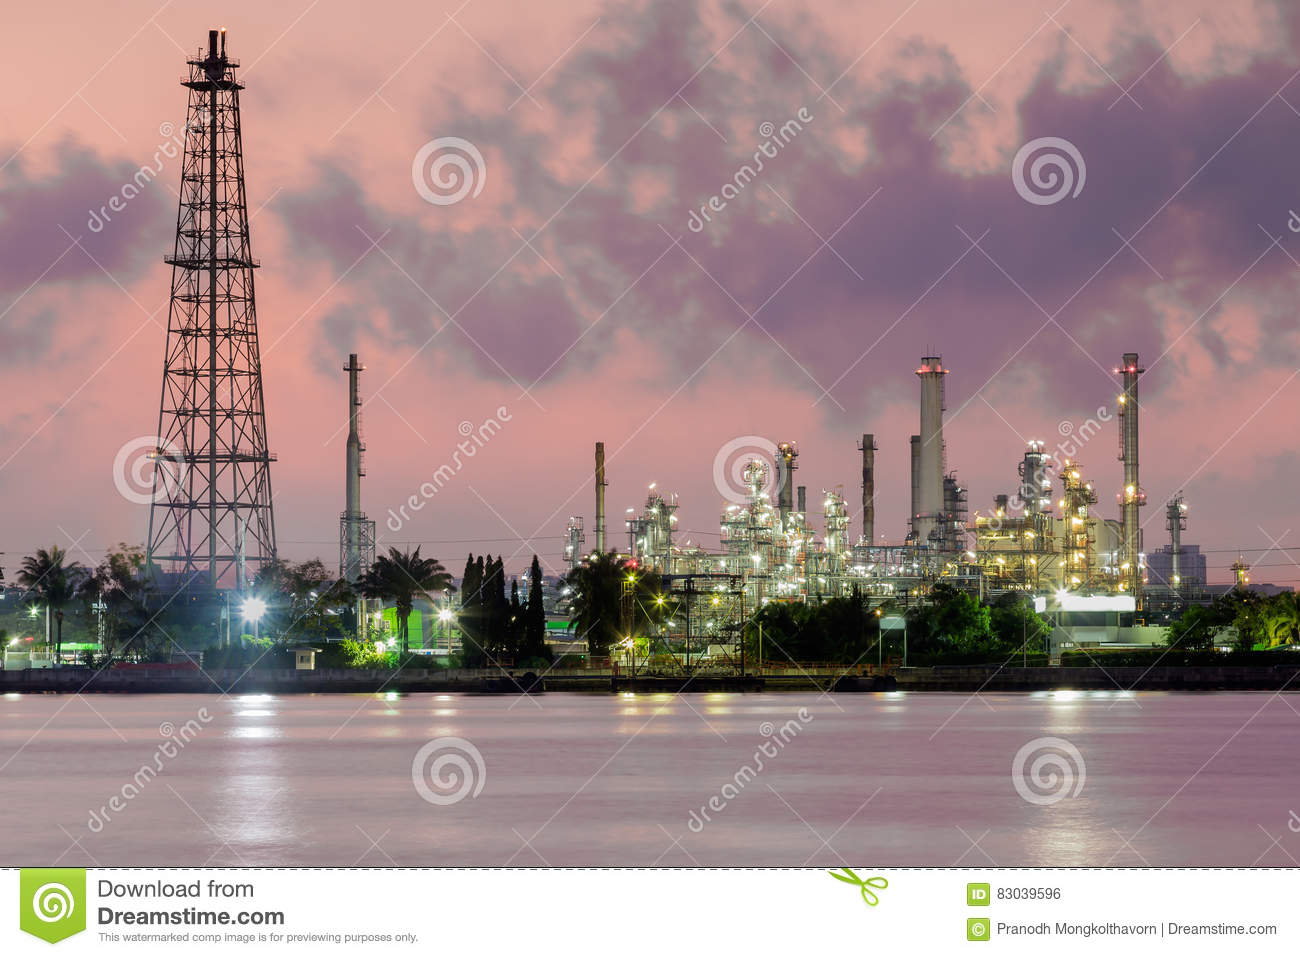 sunrise-over-oil-refinery-light-river-fr